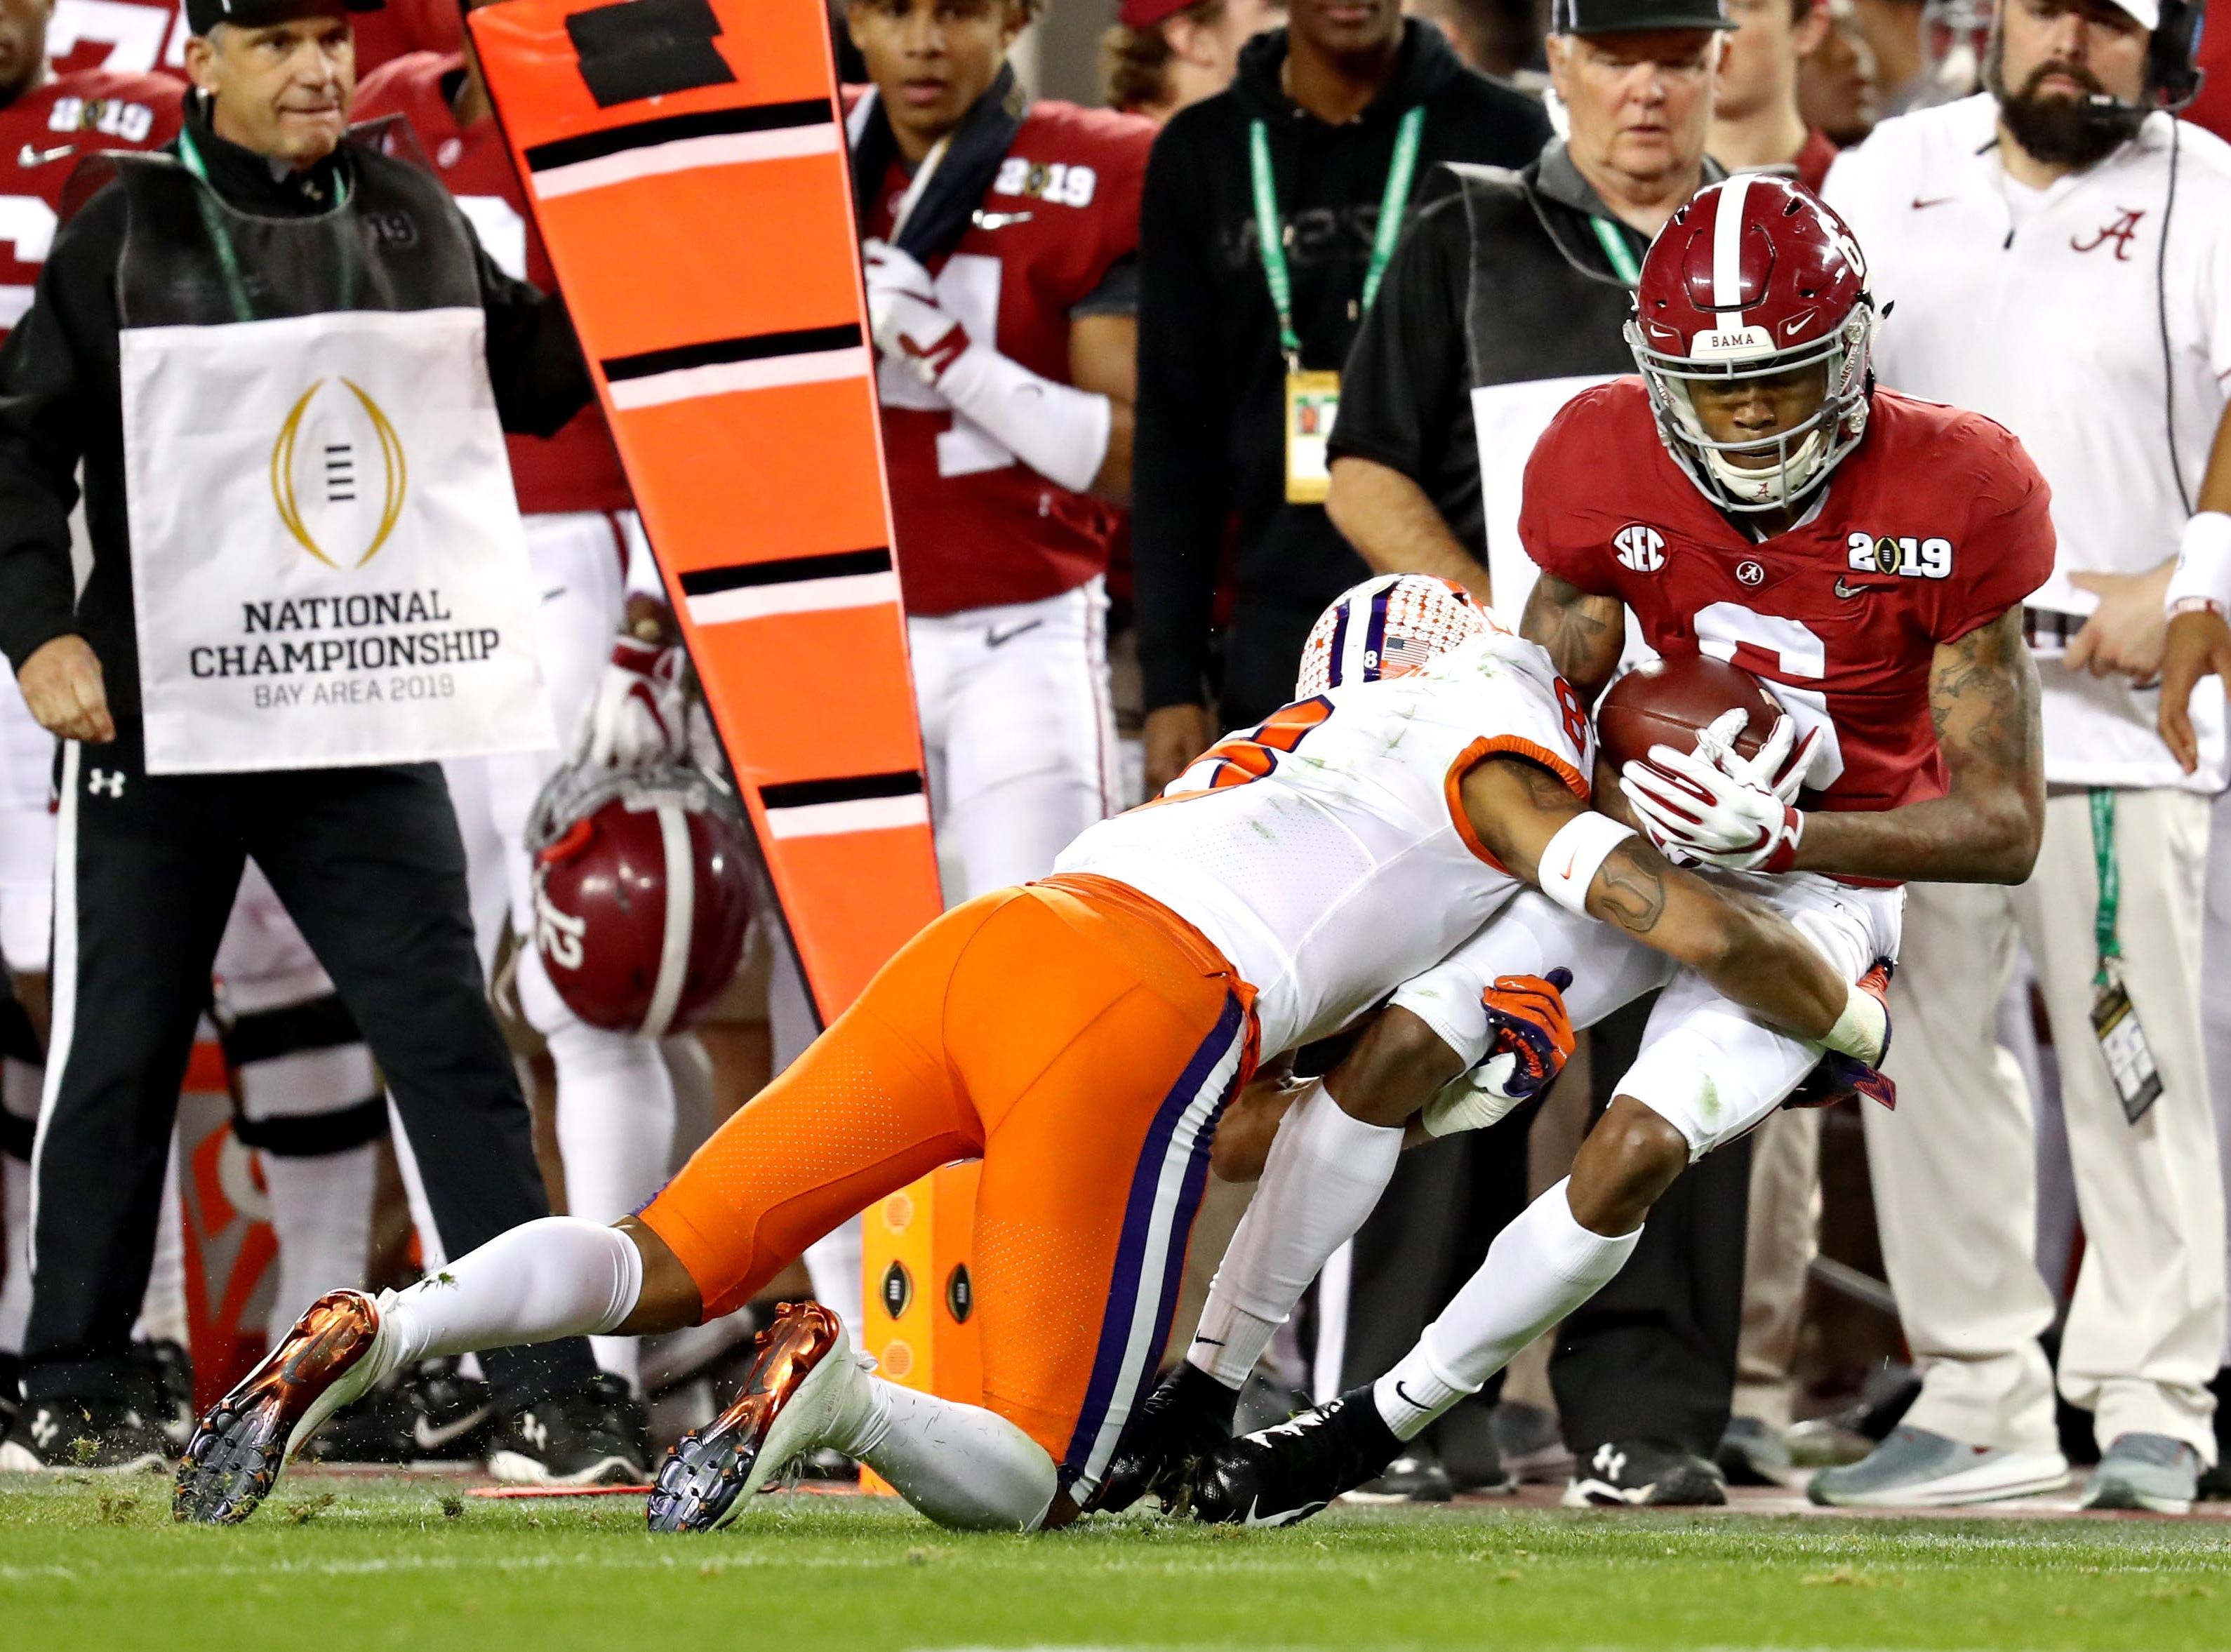 Jan 7, 2019; Santa Clara, CA, USA; Alabama Crimson Tide wide receiver DeVonta Smith (6) is tackled by Clemson Tigers cornerback A.J. Terrell (8) during the third quarter during the 2019 College Football Playoff Championship game at Levi's Stadium. Mandatory Credit: Matthew Emmons-USA TODAY Sports